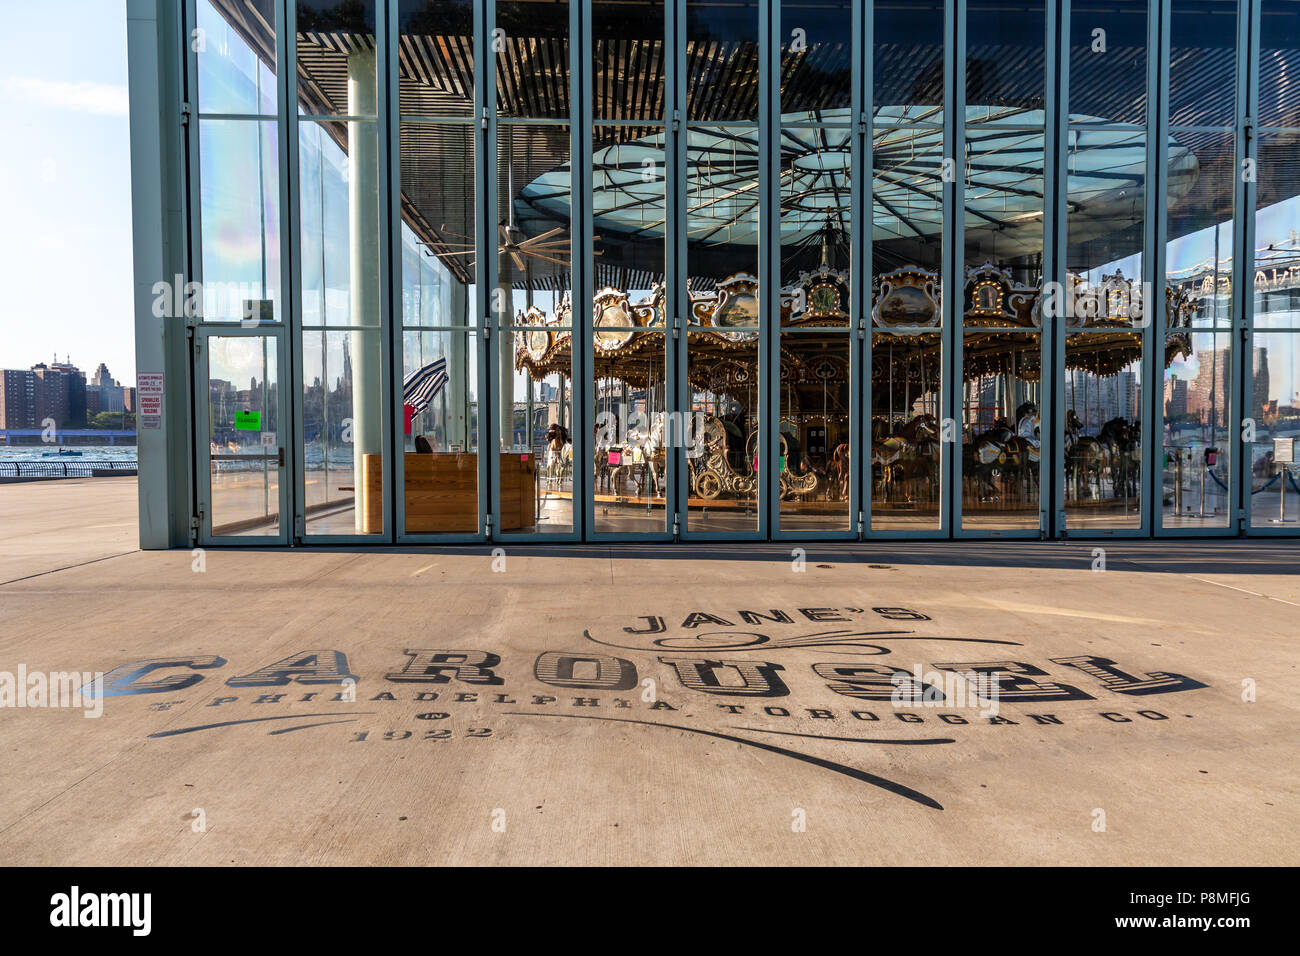 New York, City / USA - JUL 10 2018: Jane's Carousel at clear day afternoon in Brooklyn Bridge Park - Stock Image